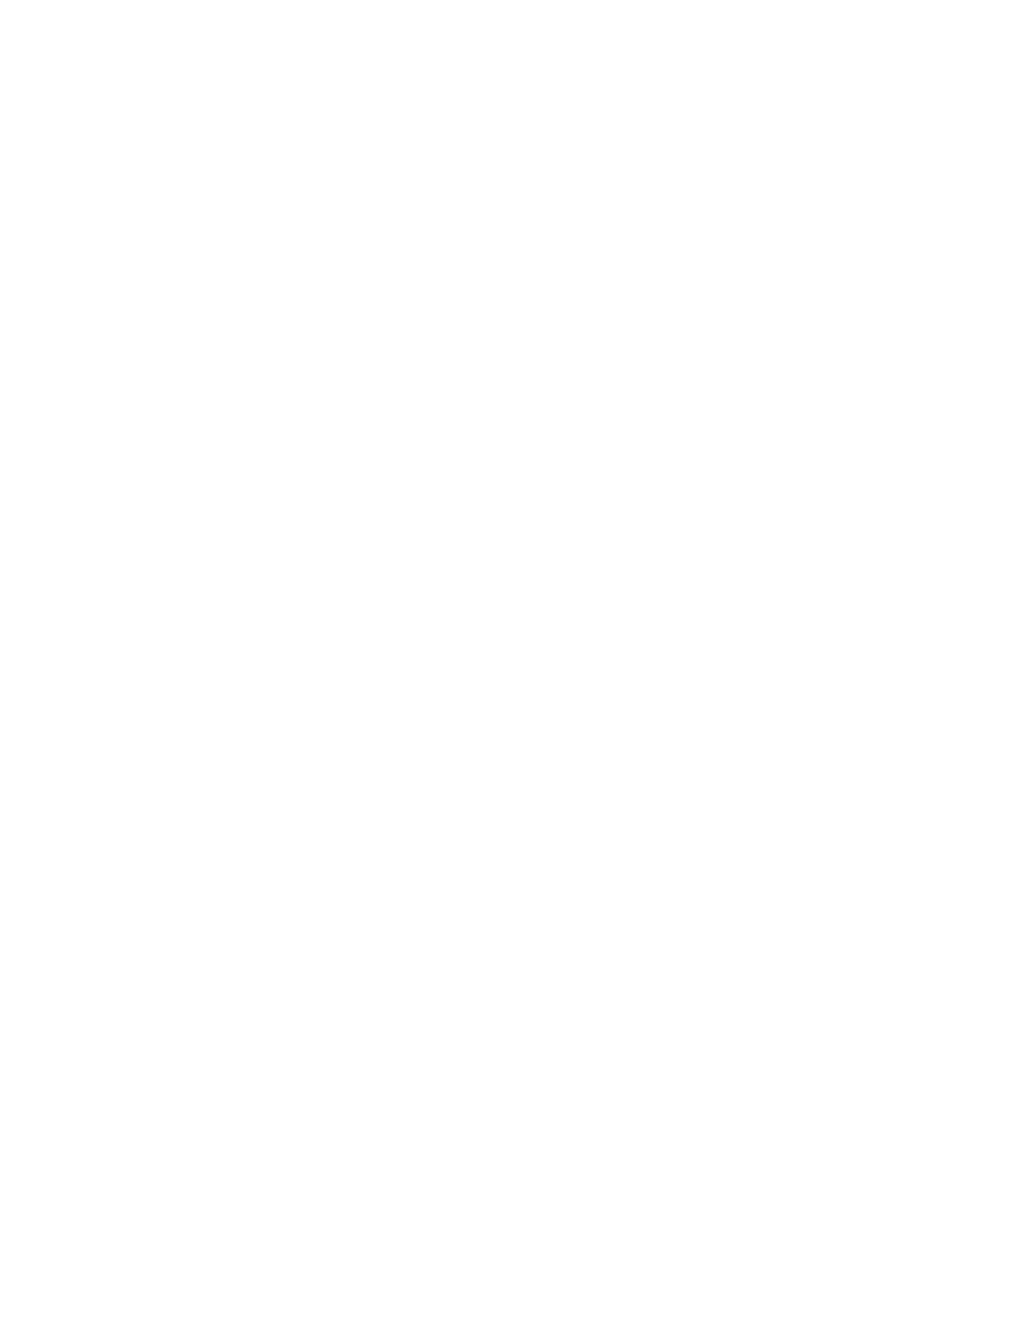 Silhouette round water tower clipart.